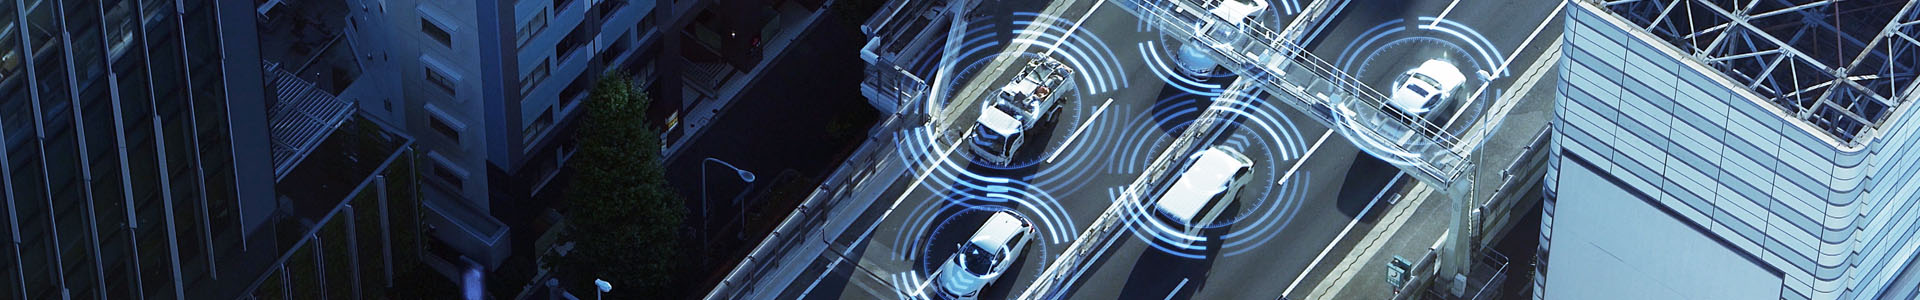 Luminar LiDAR and its potential disruption of the vision-based ADAS industry